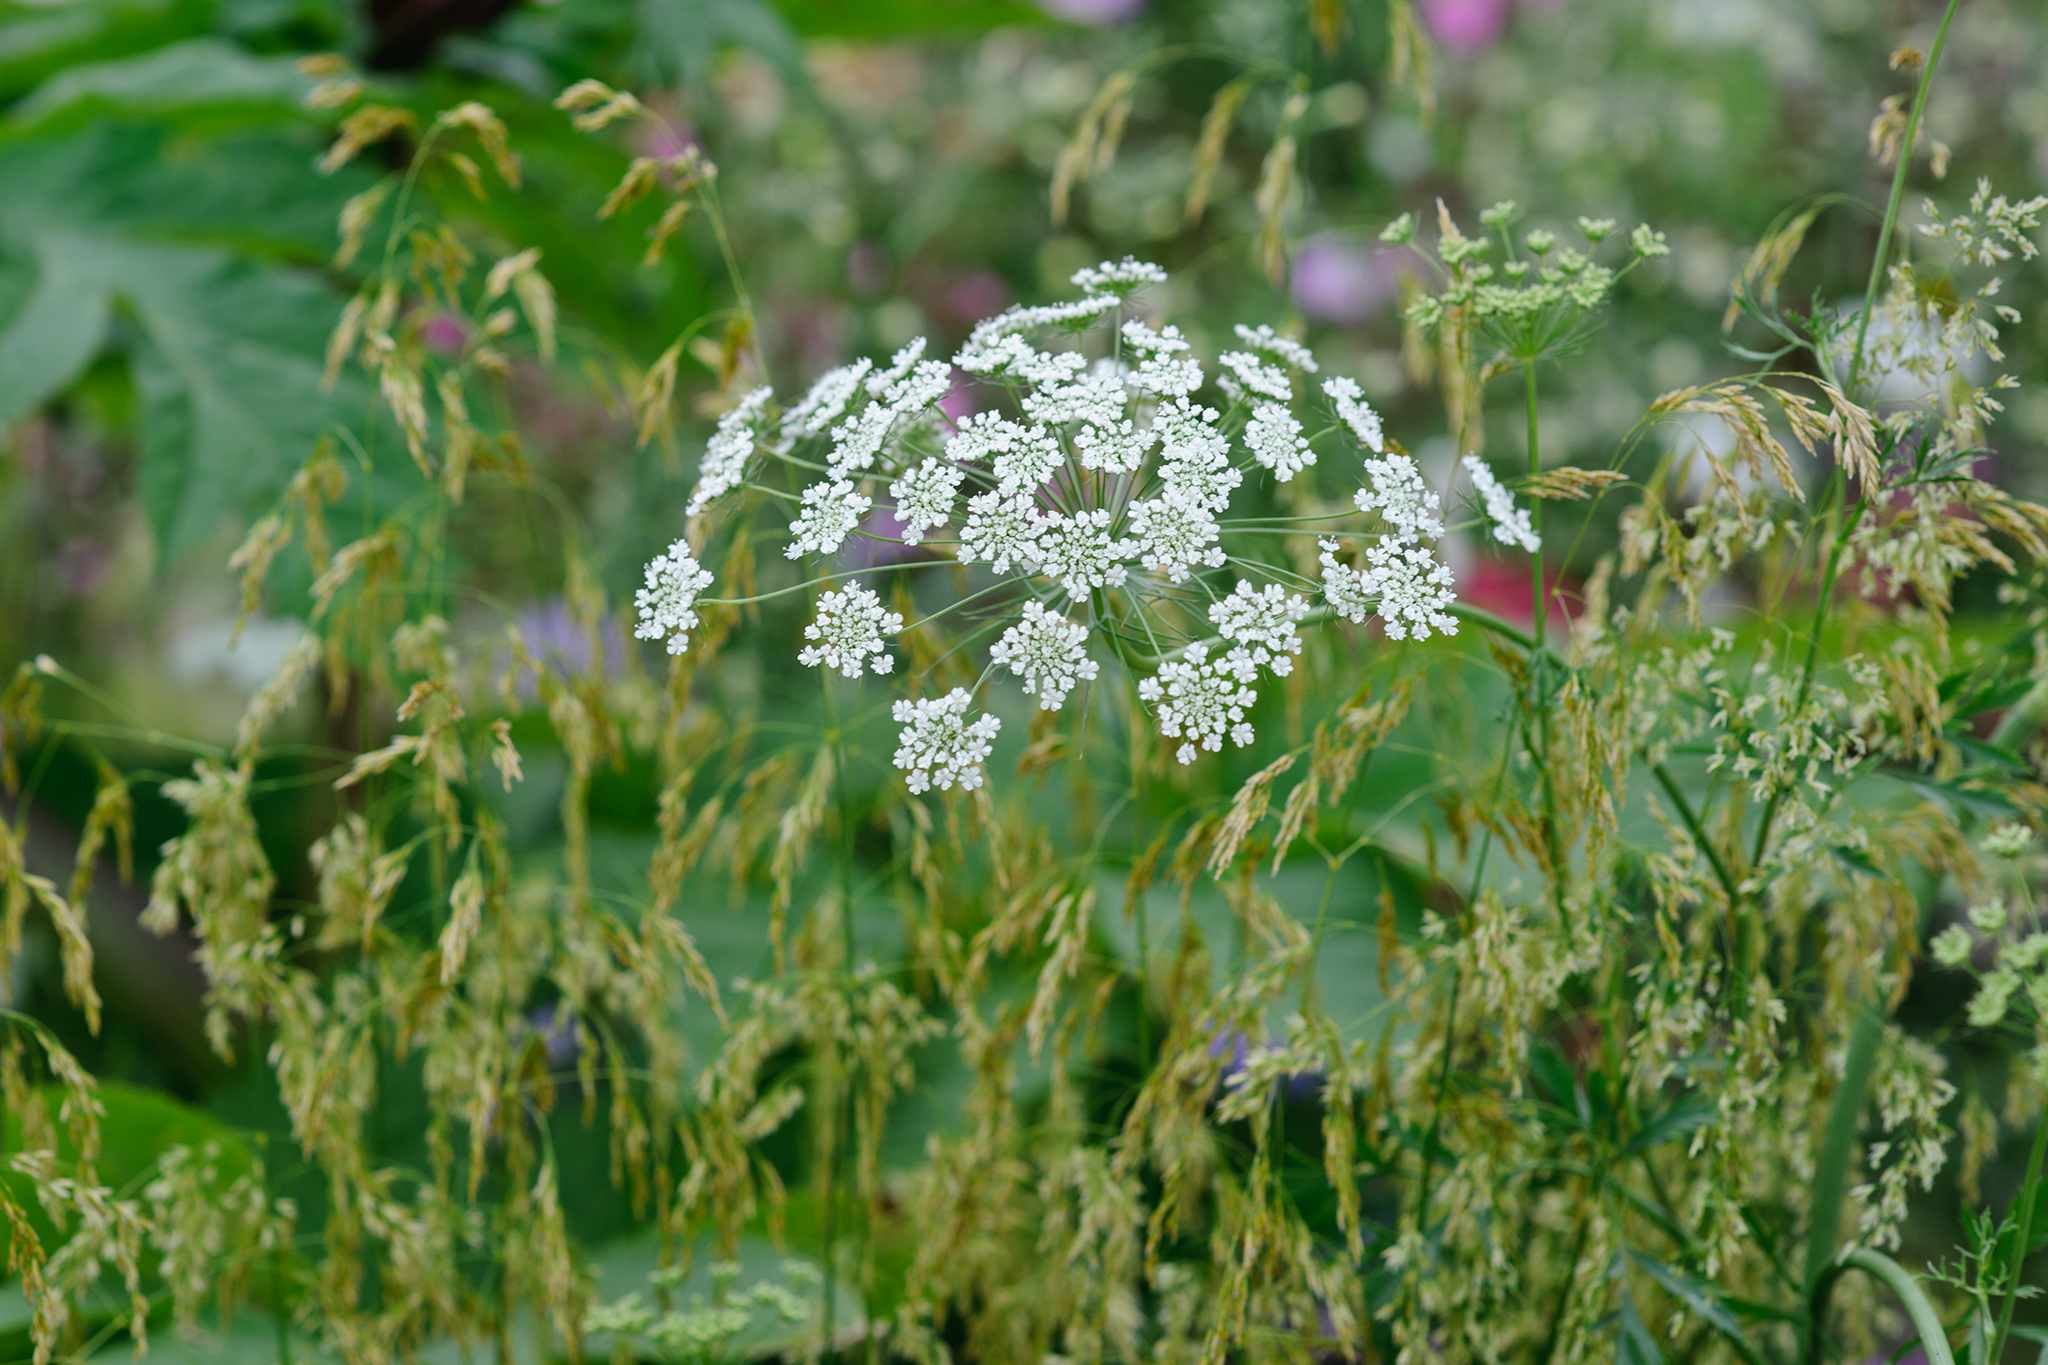 Plants with umbellifer flowers